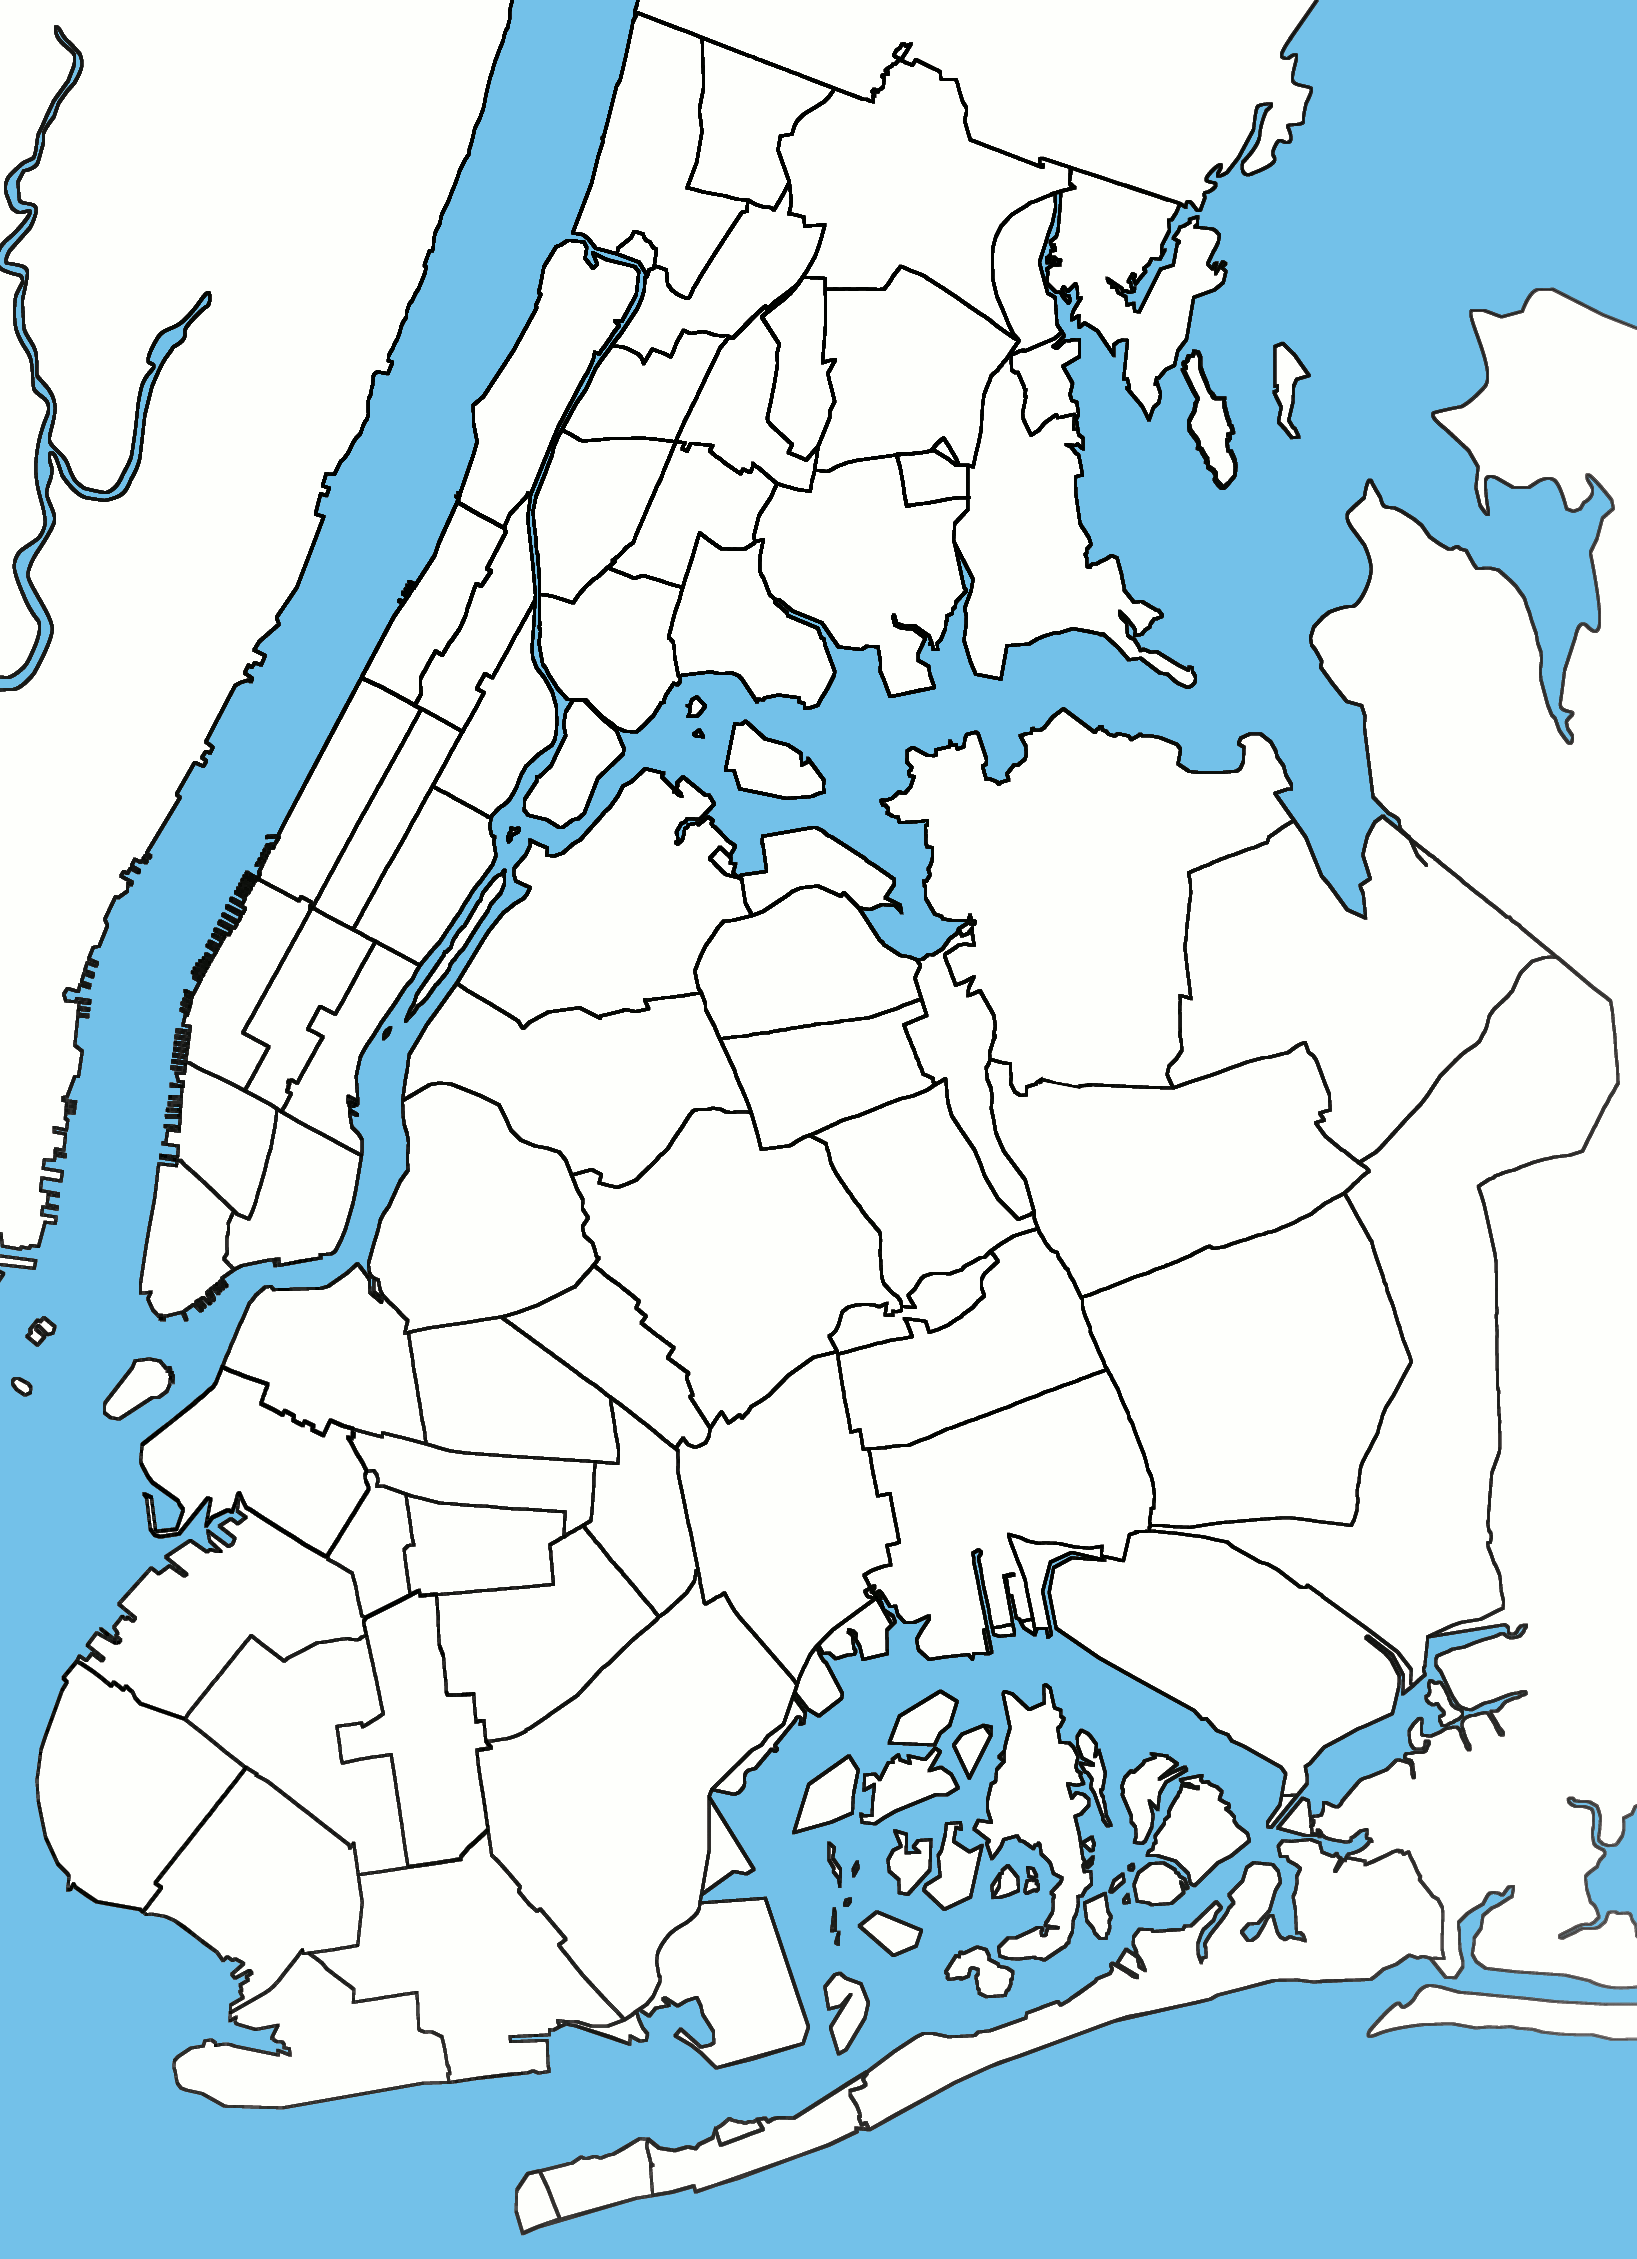 Blank Usable Map Of NYC Boroughs - New york map city